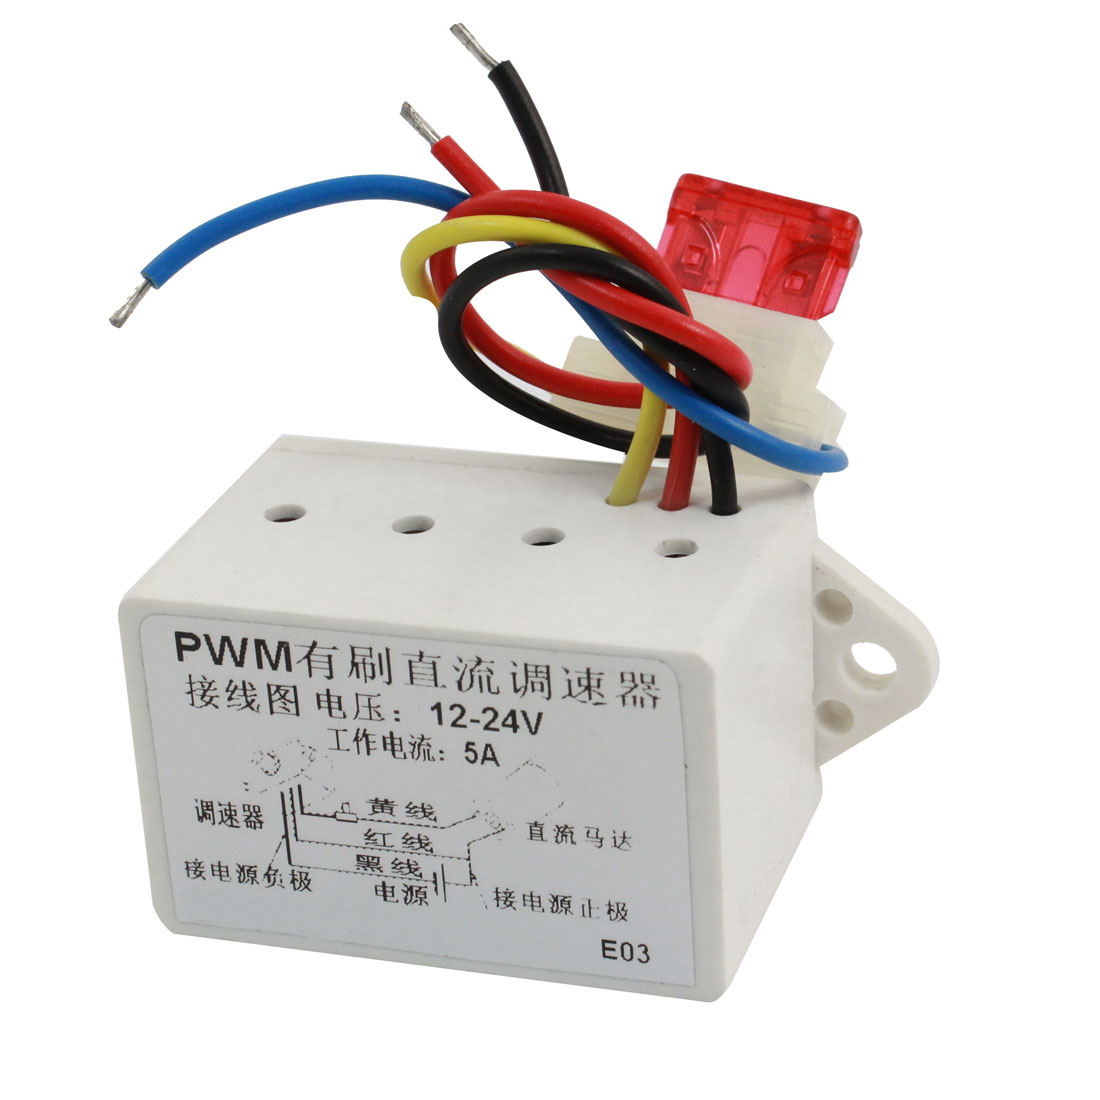 DC 12-24V 5A Power Single Phase Stepless Variable PWM Motor Speed Controller